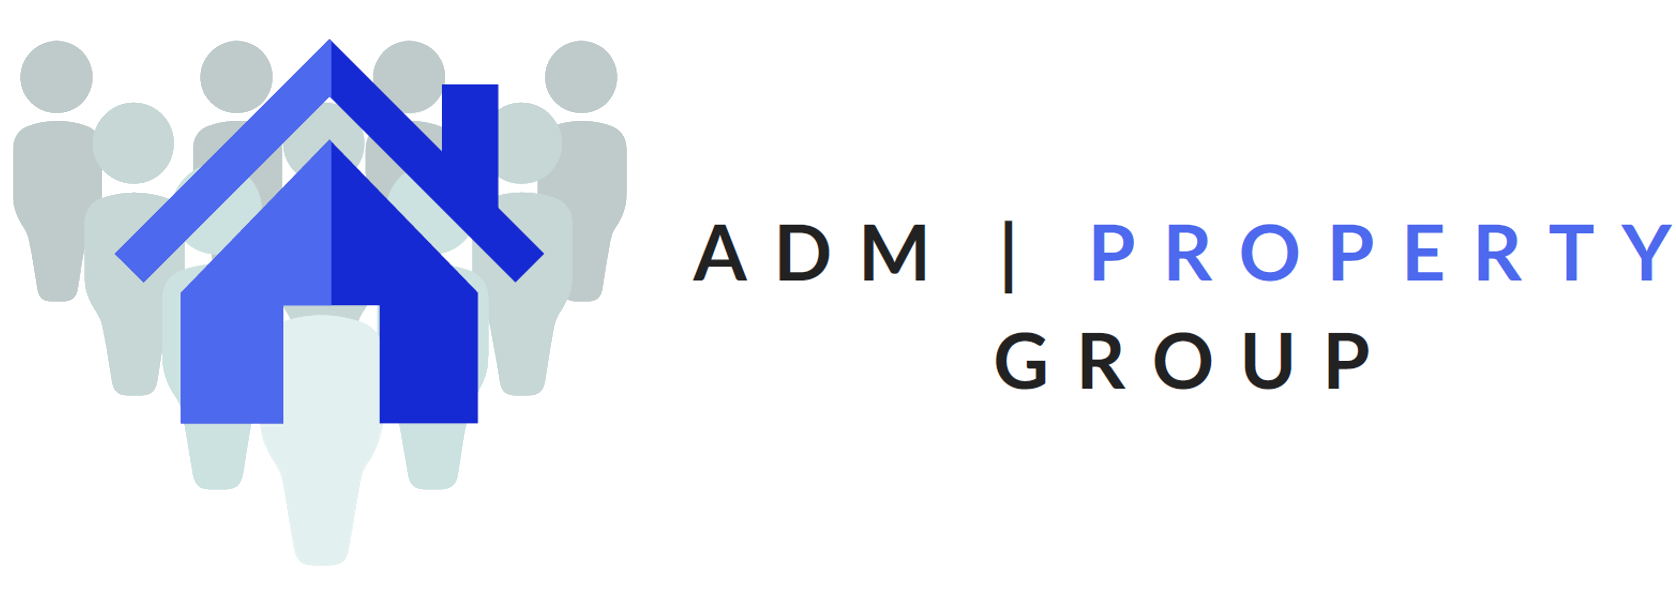 ADM Property Group